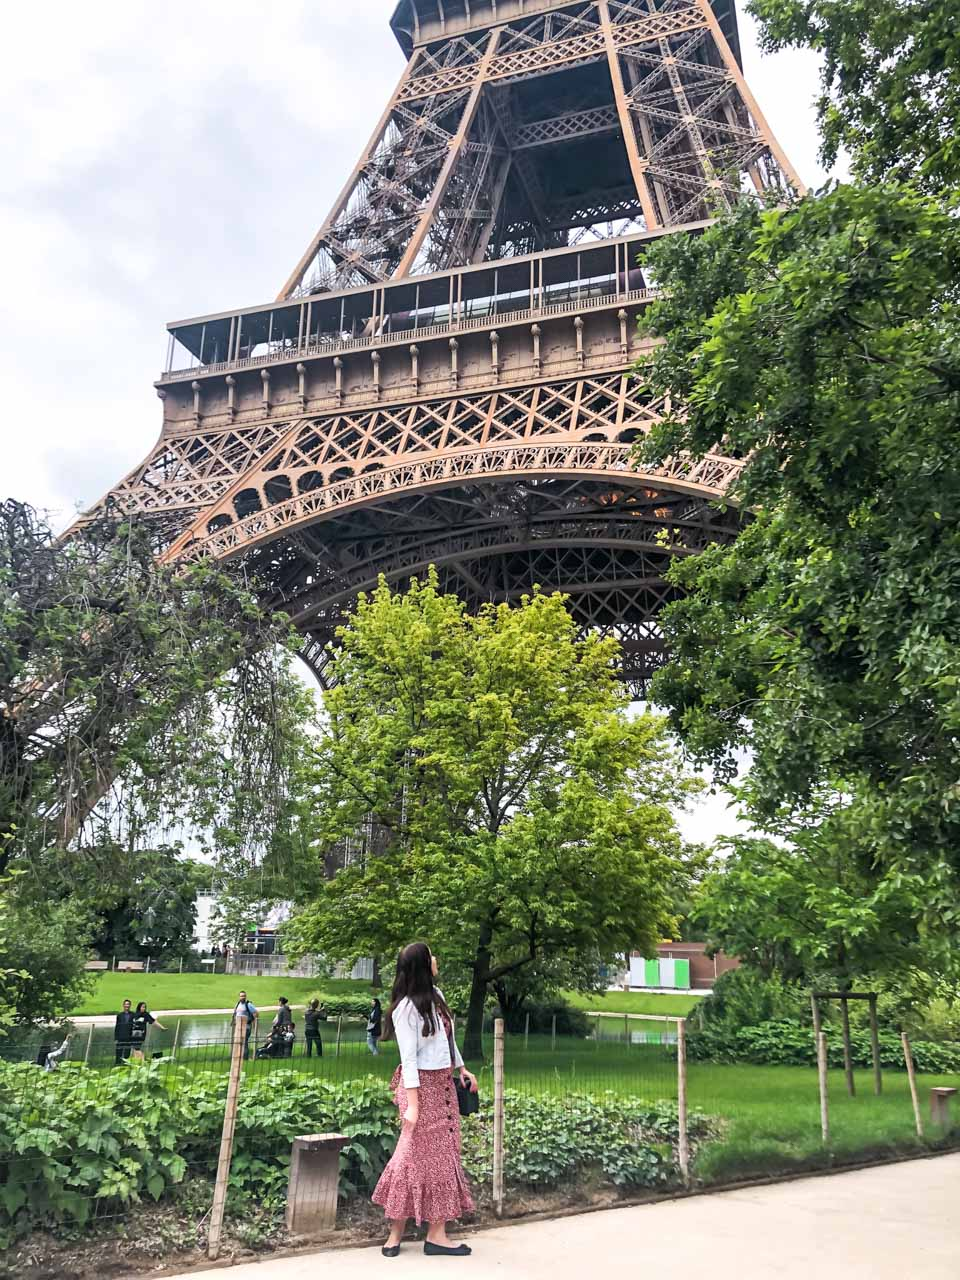 A dark-haired woman in a light denim jacket, a white and red floral midi dress and black ballet flats looking up at the Eiffel Tower in Paris, France as she is standing in the park surrounding it